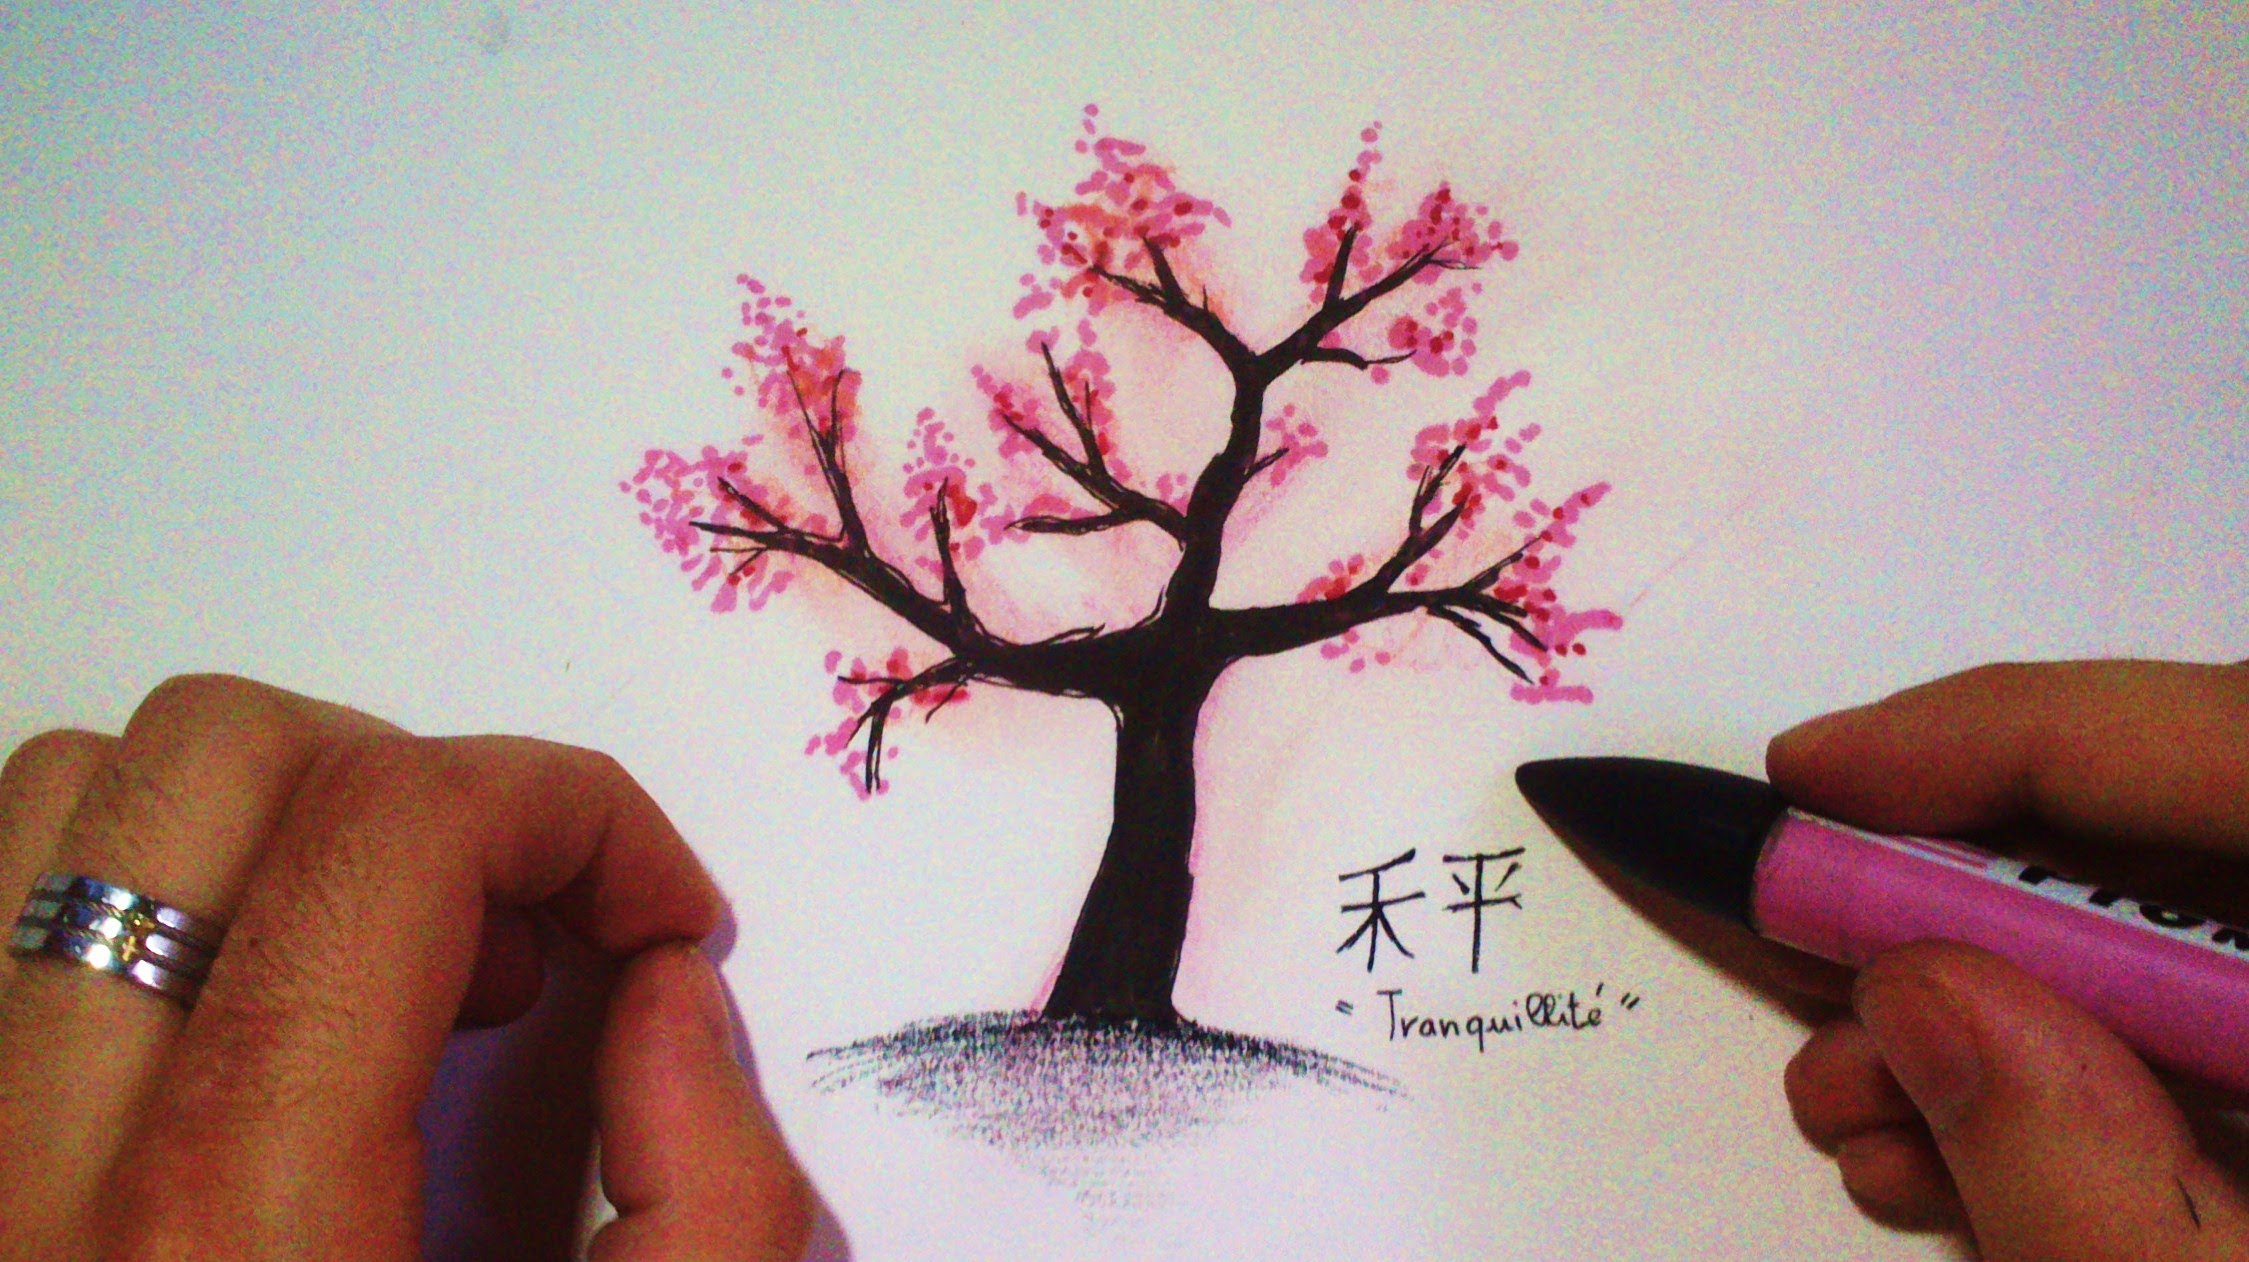 Drawn sakura blossom pencil step by step YouTube tree Japanese to How